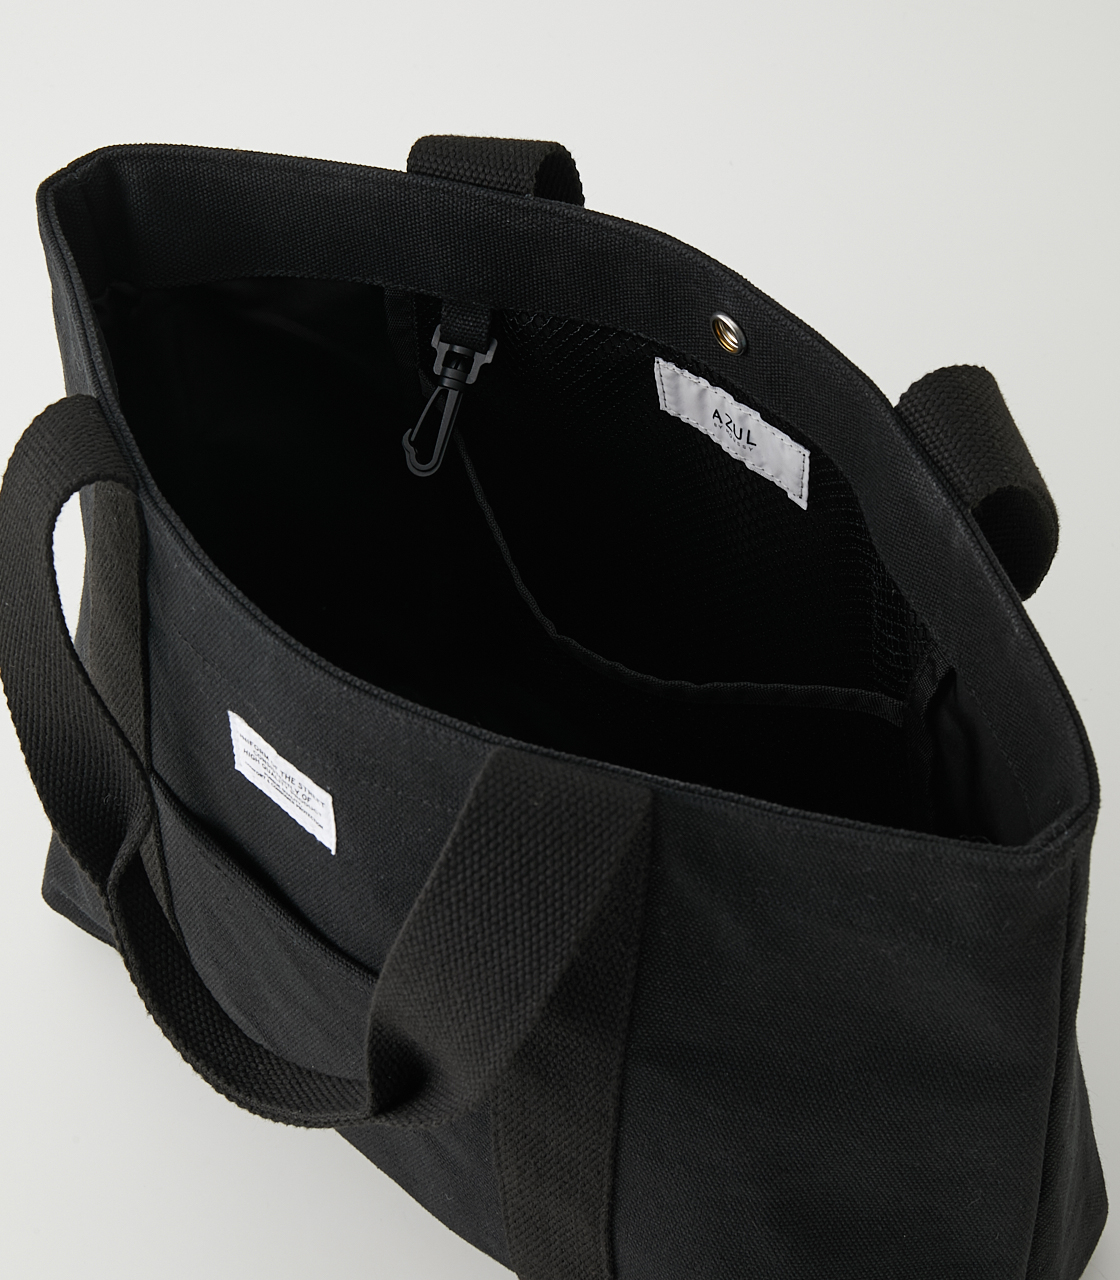 CANVAS TOTE BAG/キャンバストートバッグ 詳細画像 BLK 6